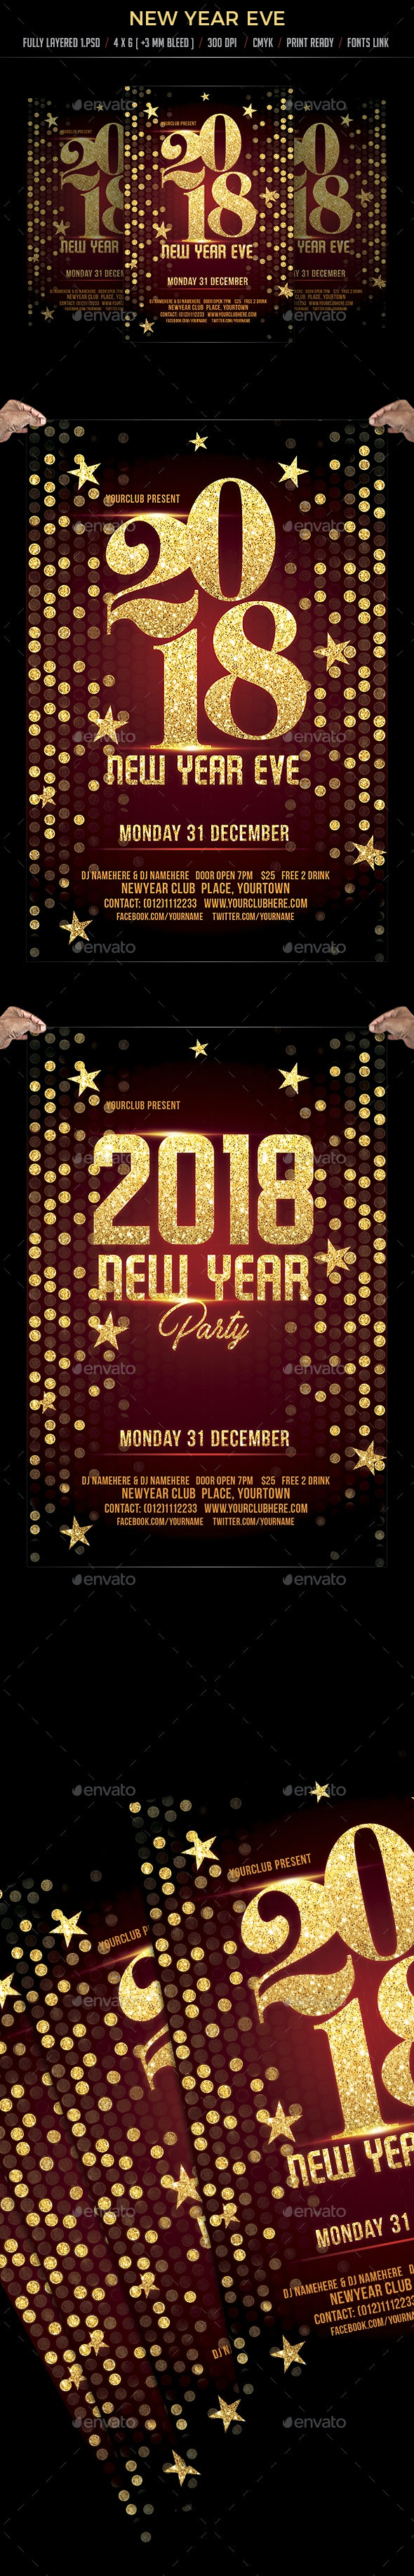 New Year Eve Flyer Template - Flyers Print Templates